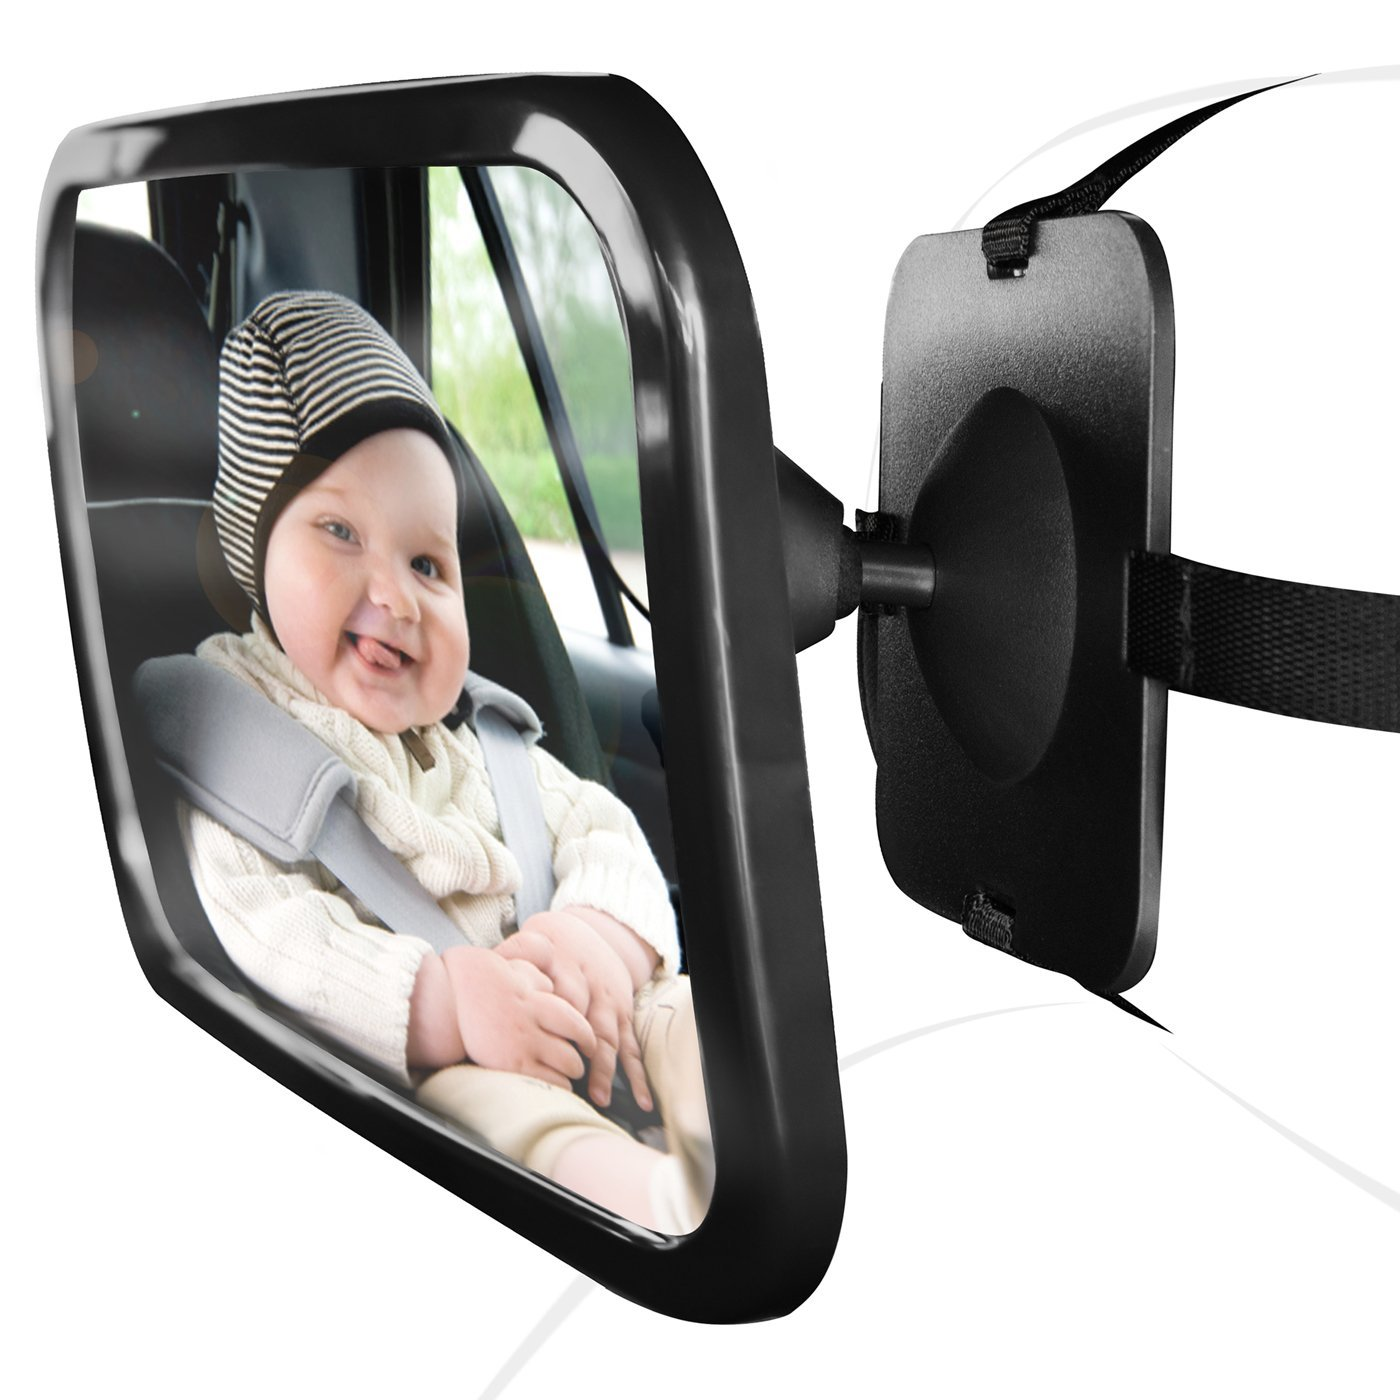 Keoghs 2017 new baby car mirror for rear view facing back seat keoghs 2017 new baby car mirror for rear view facing back seat for infant toddler child in car seat 360 adjustable double fandeluxe Image collections